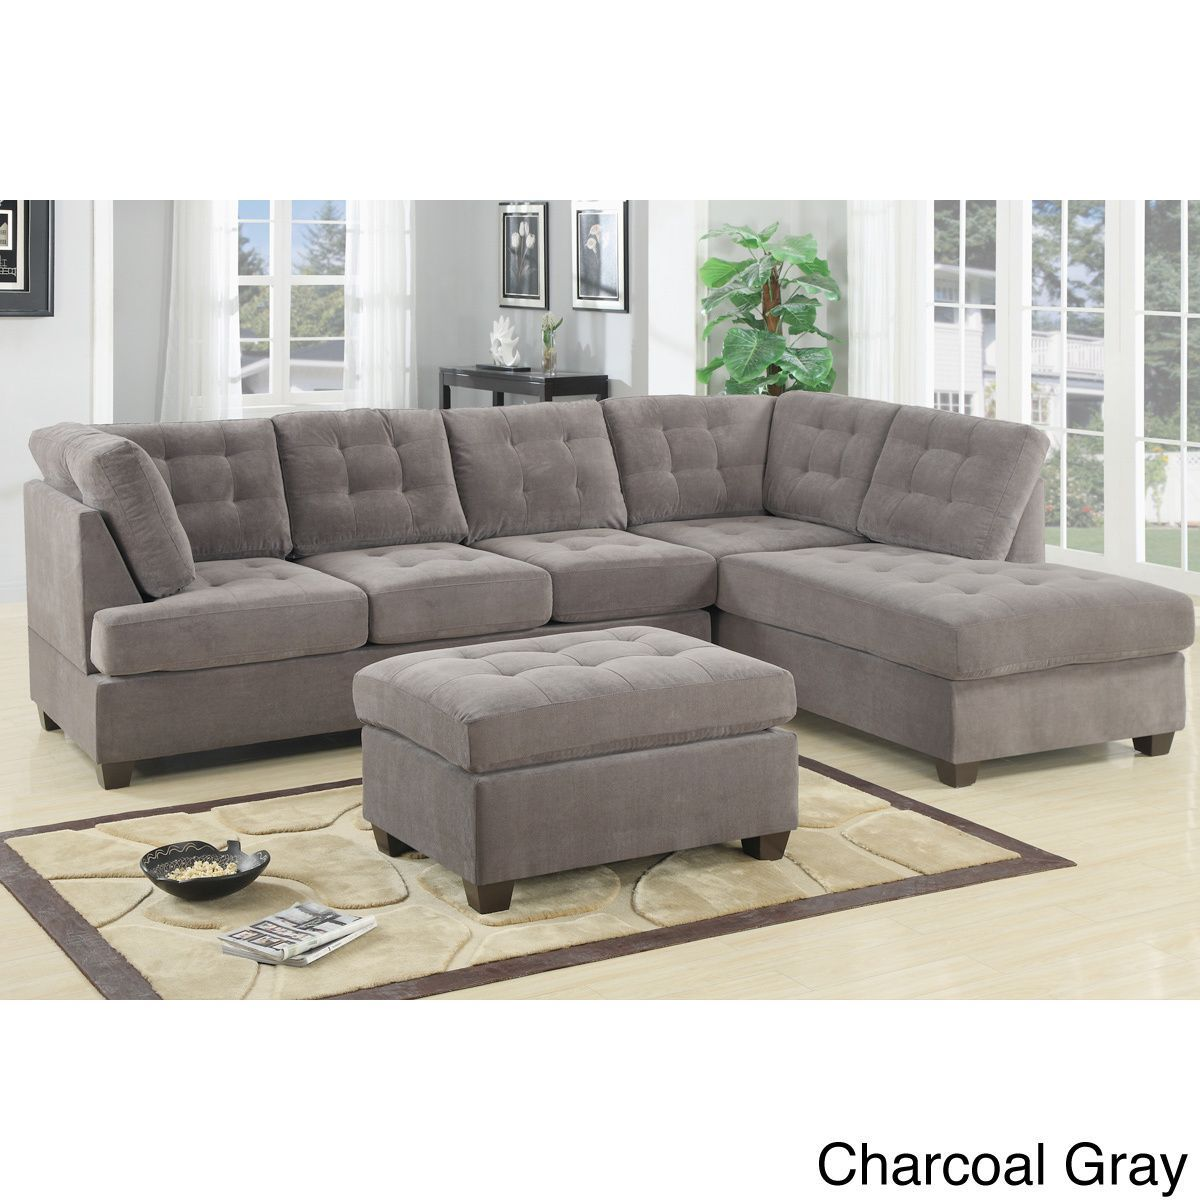 Flexsteel Sofa Odessa Waffle Suede Reversible Sectional Sofa with Ottoman